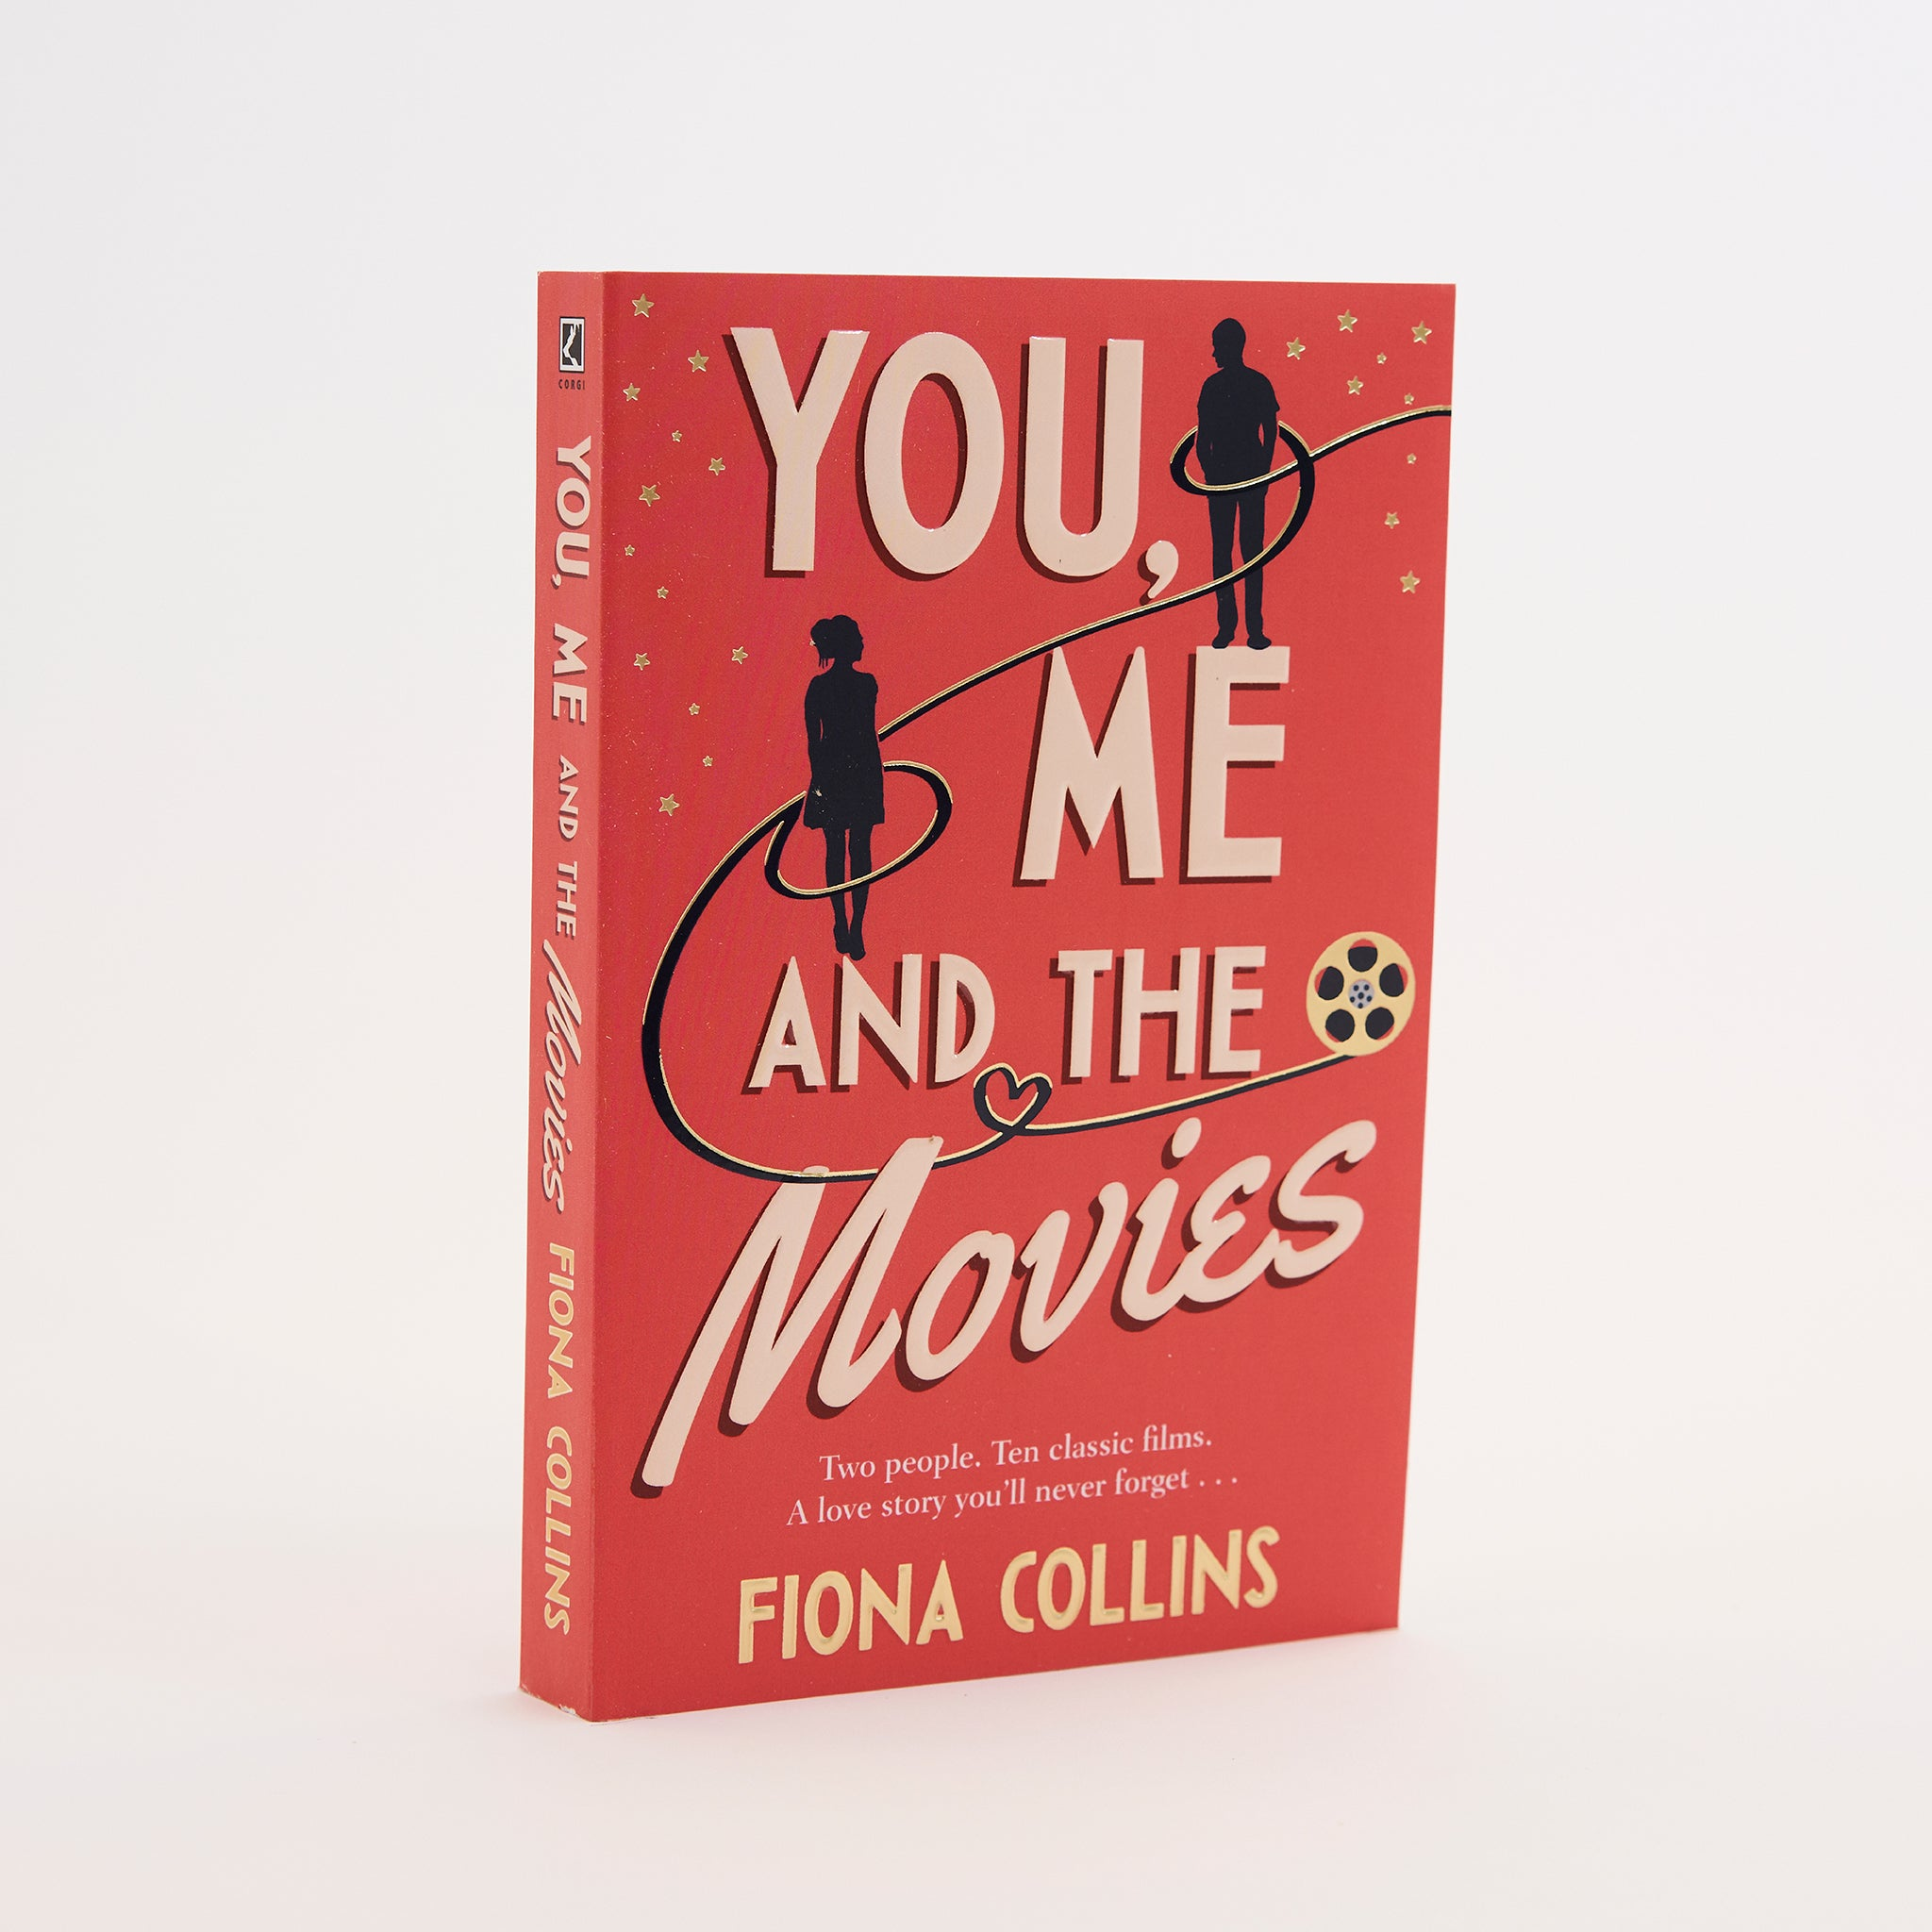 You, Me and the Movies by Fiona Collins